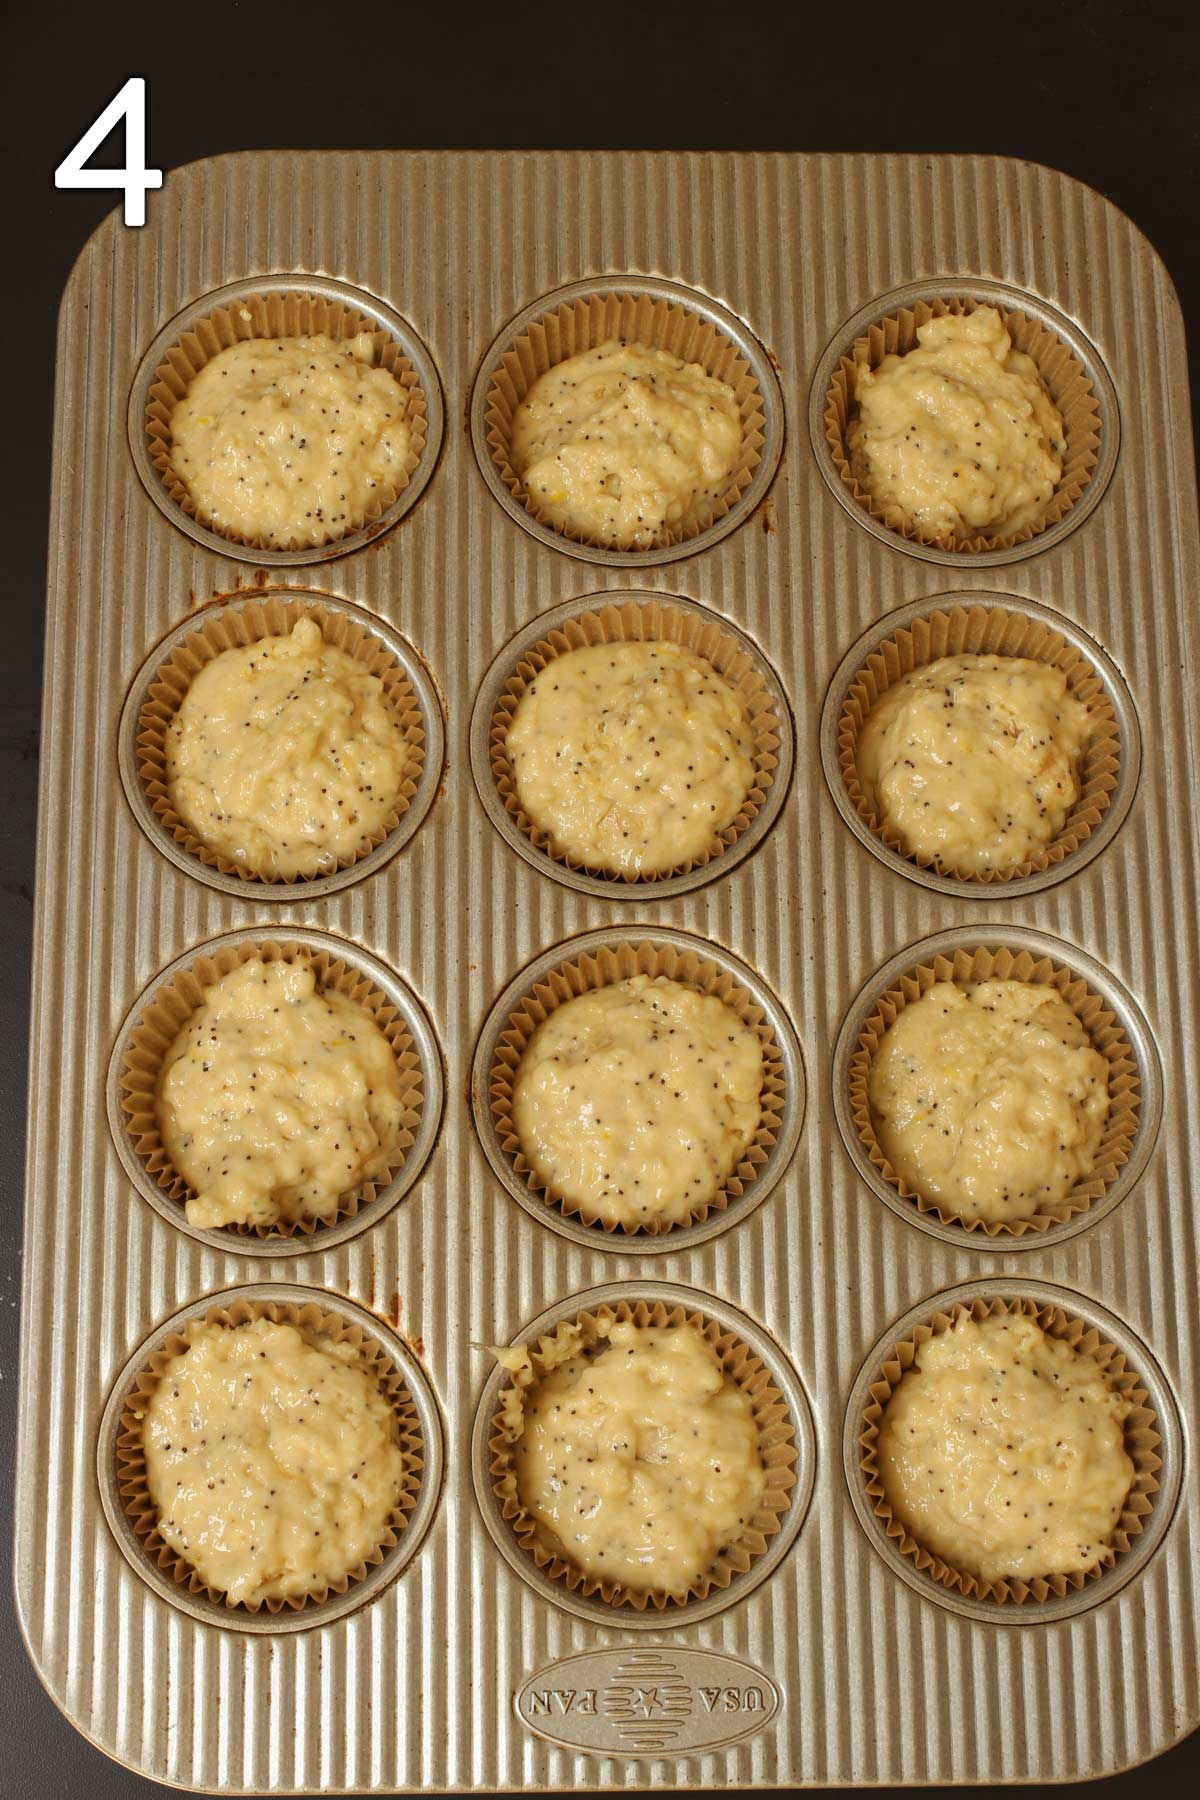 muffin batter divided into paper-lined tins.